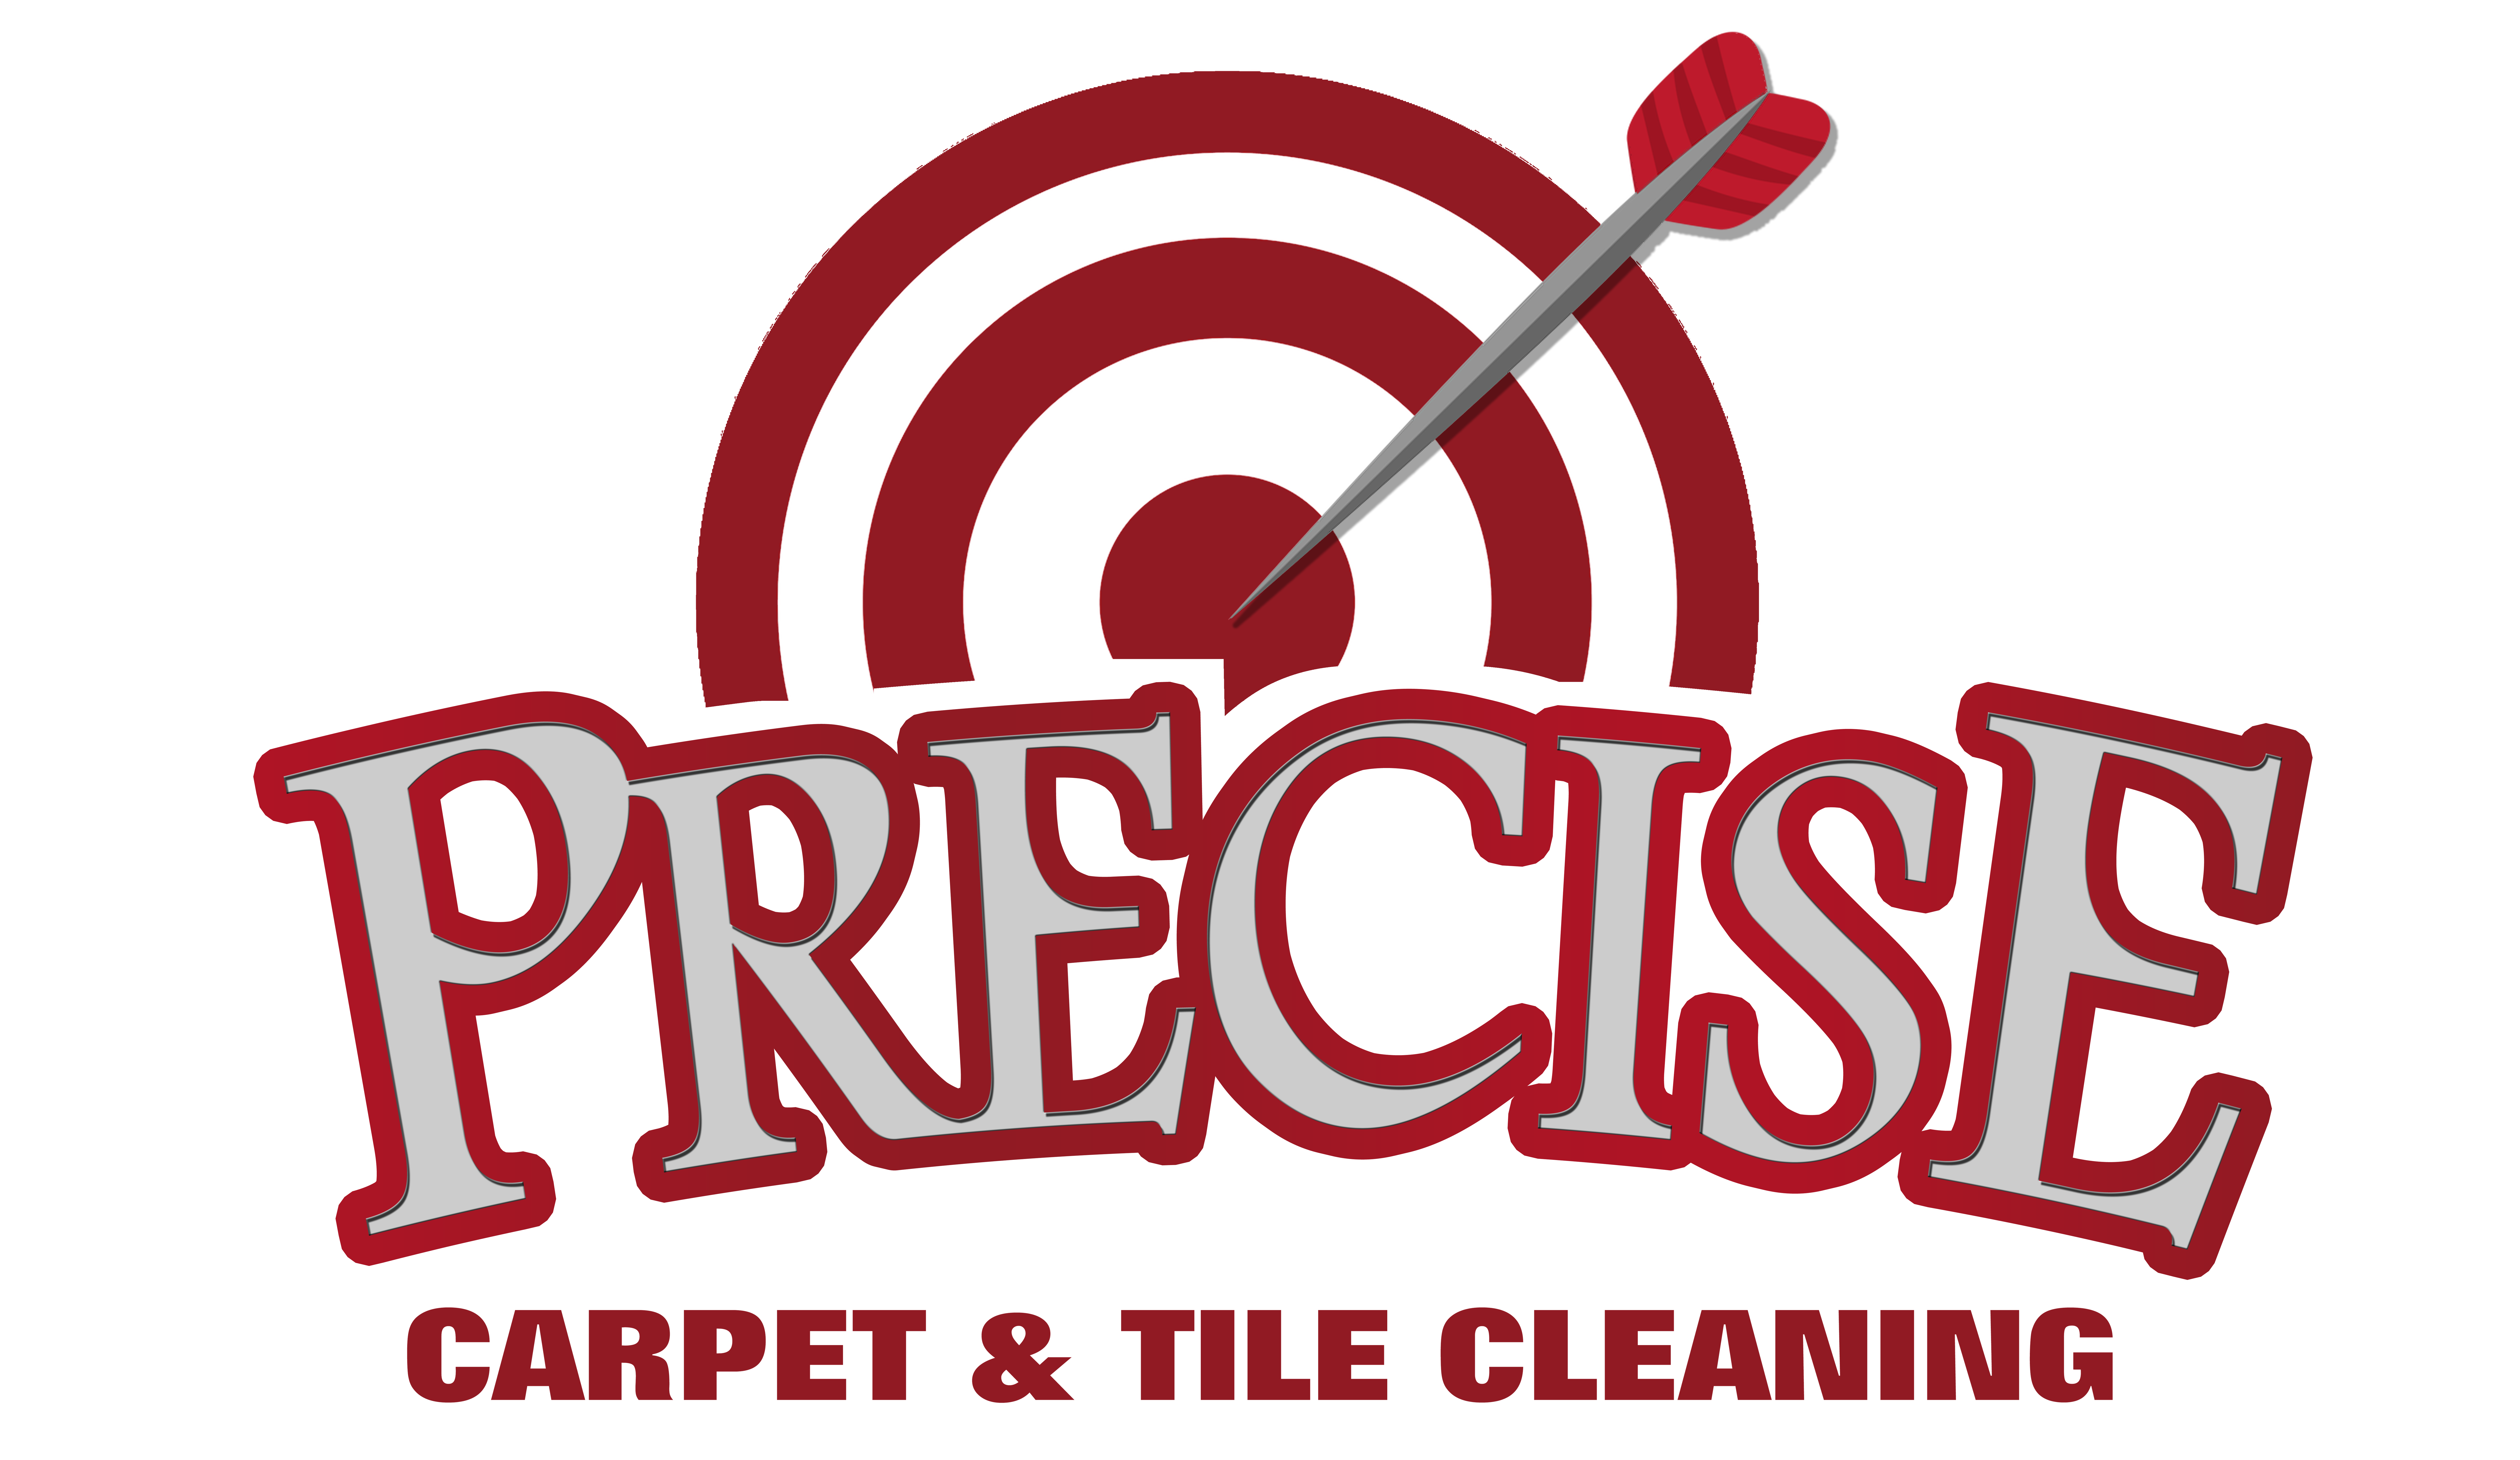 Precise Carpet & Tile Cleaning Services